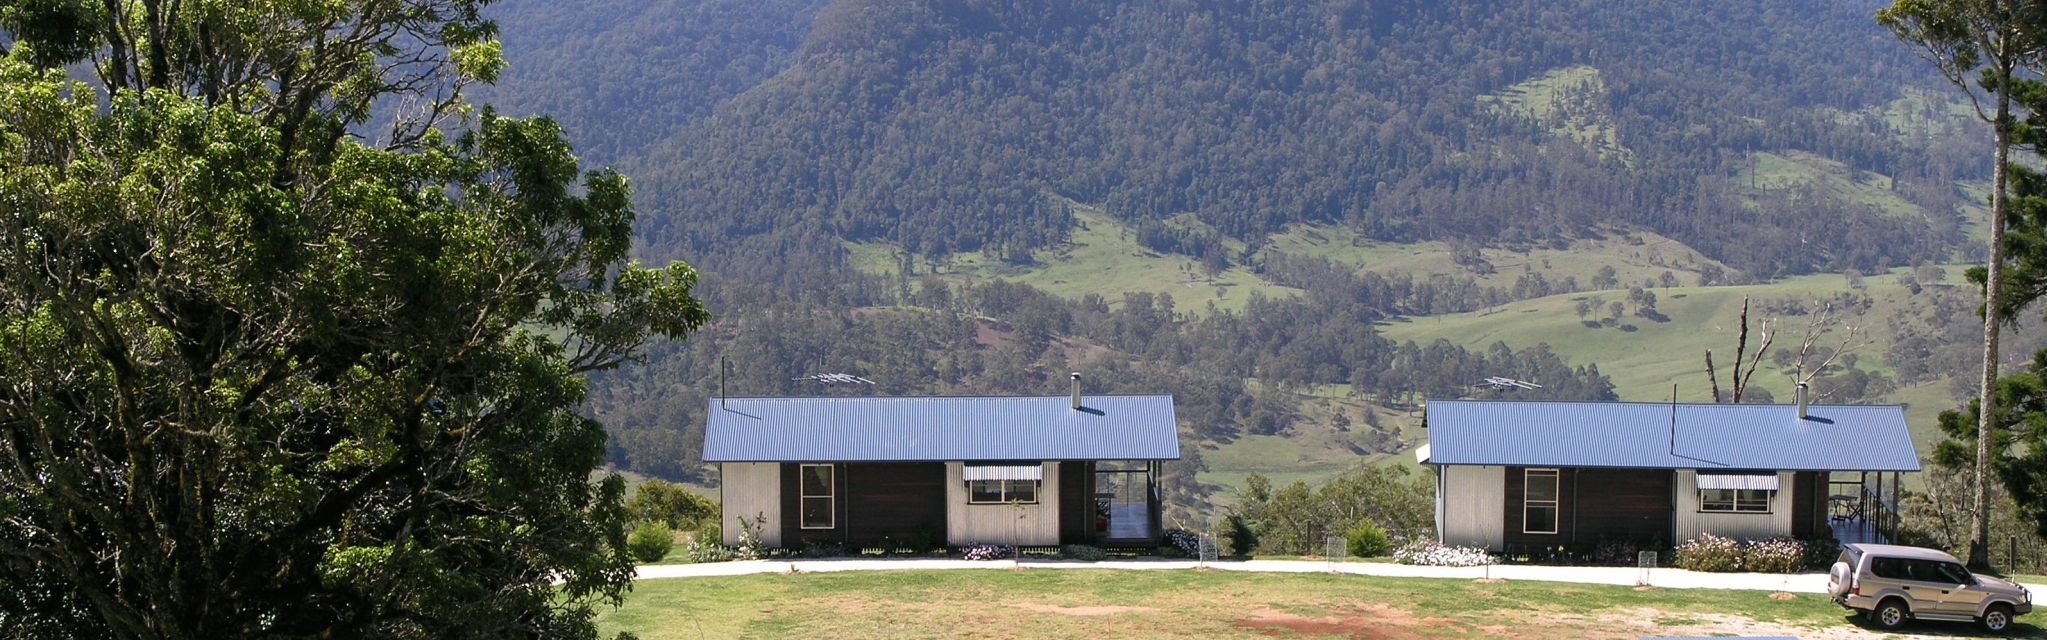 Spring Creek Cottages on our Border Ranges Short Break Tour